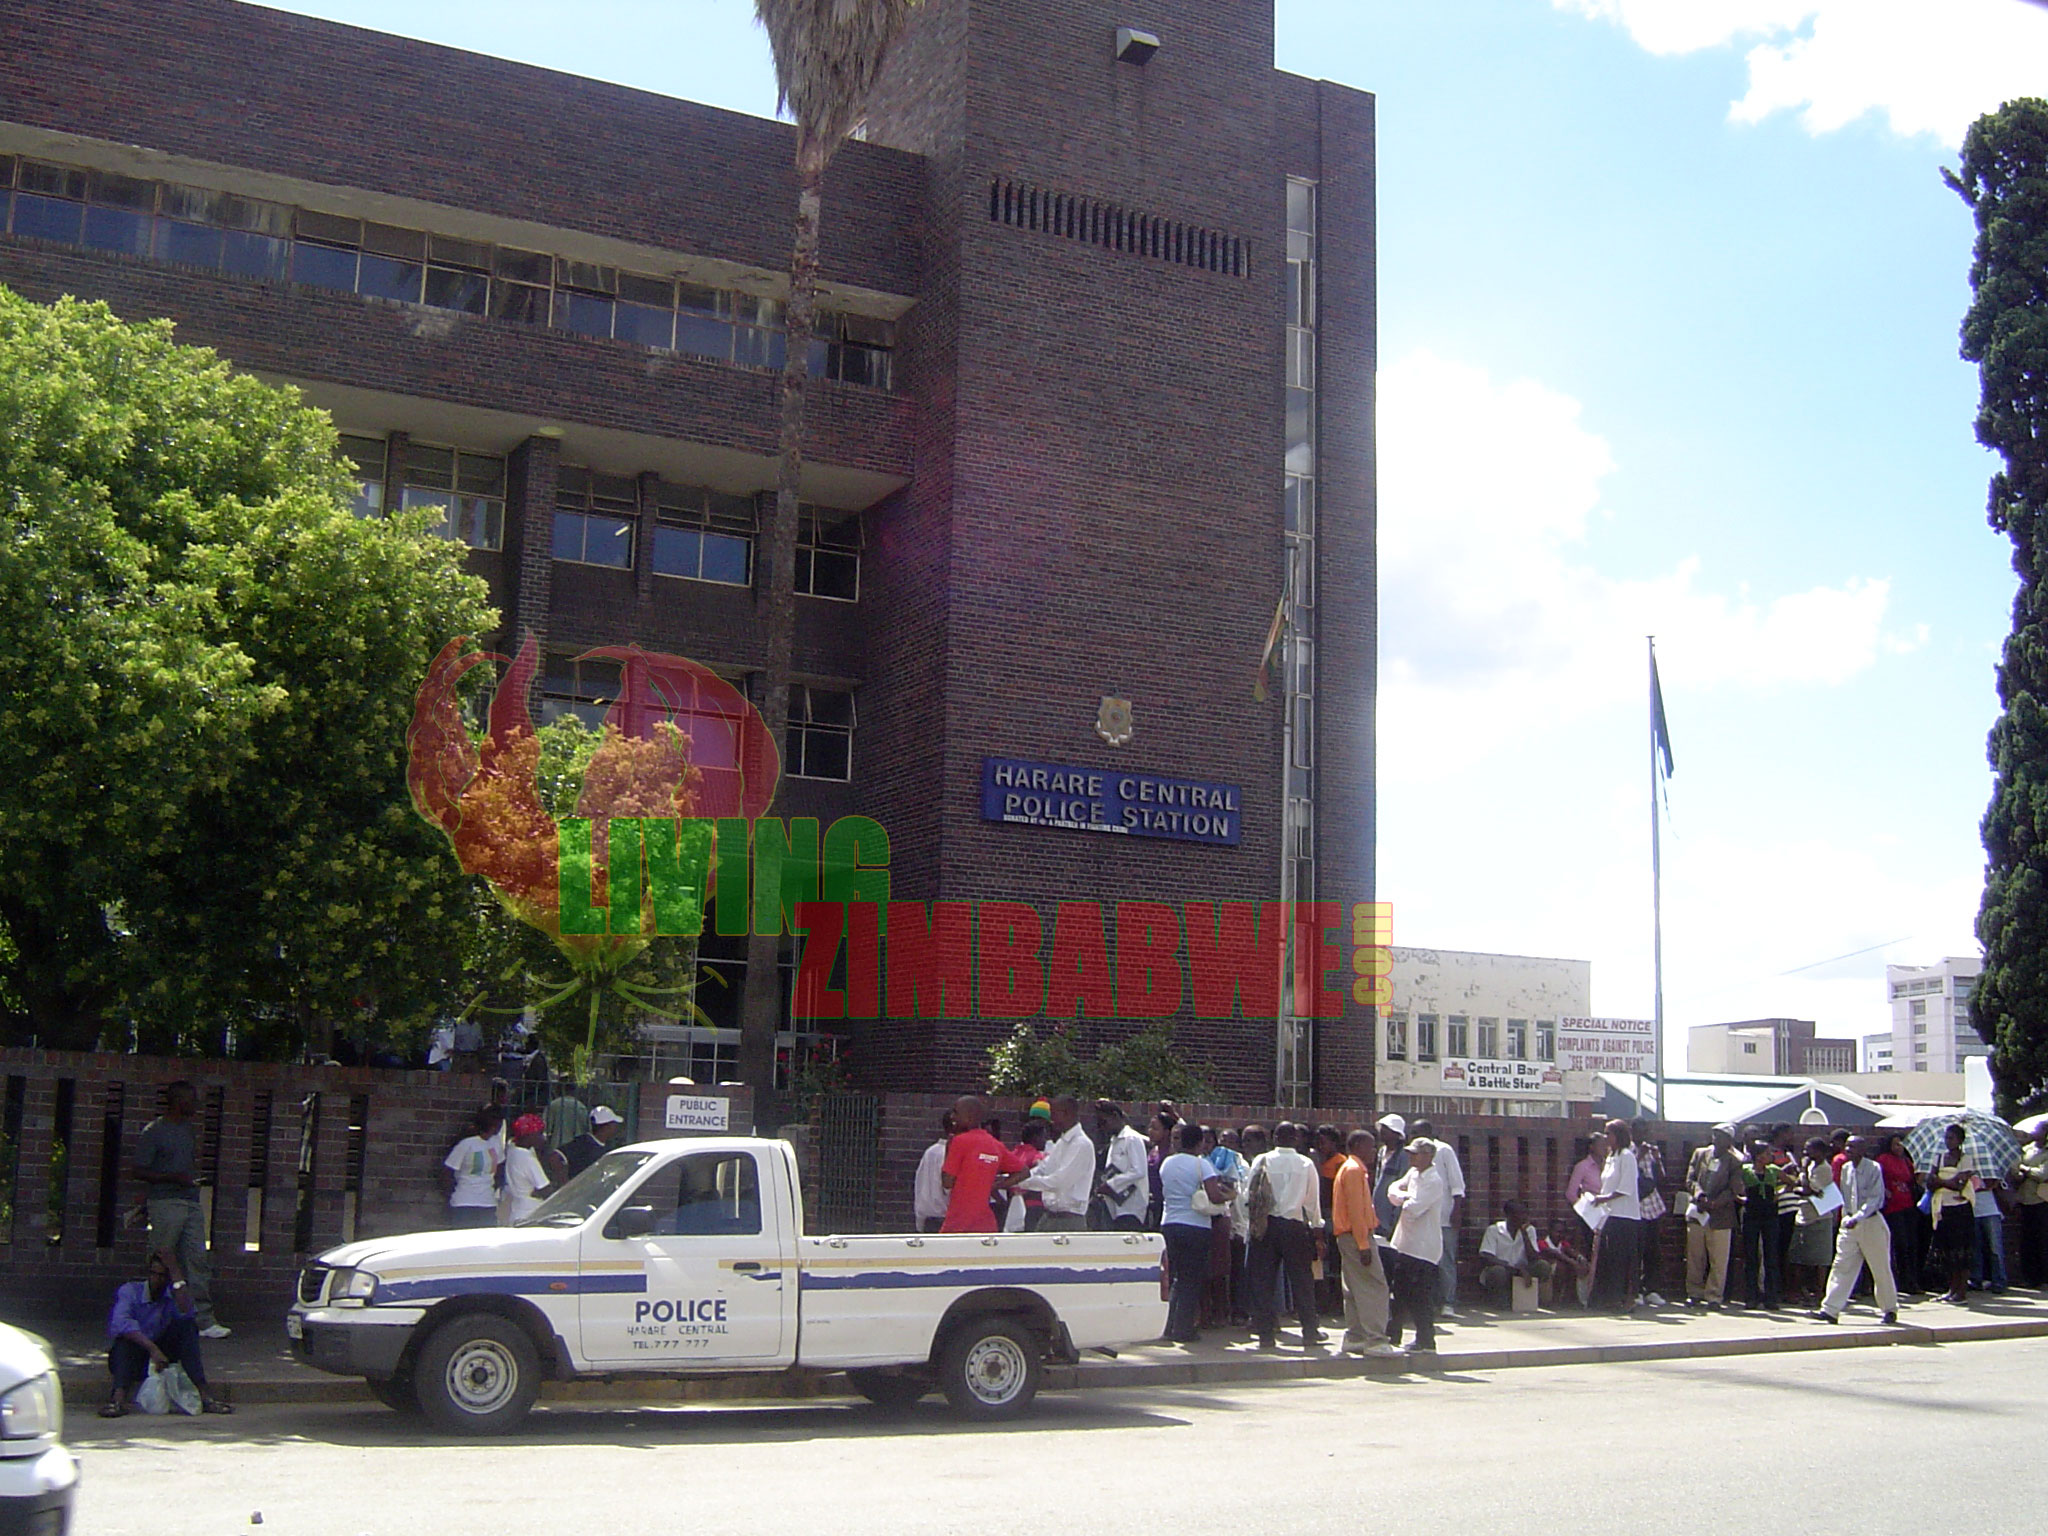 Harare Central Police Station | Zimbabwe Republic Police